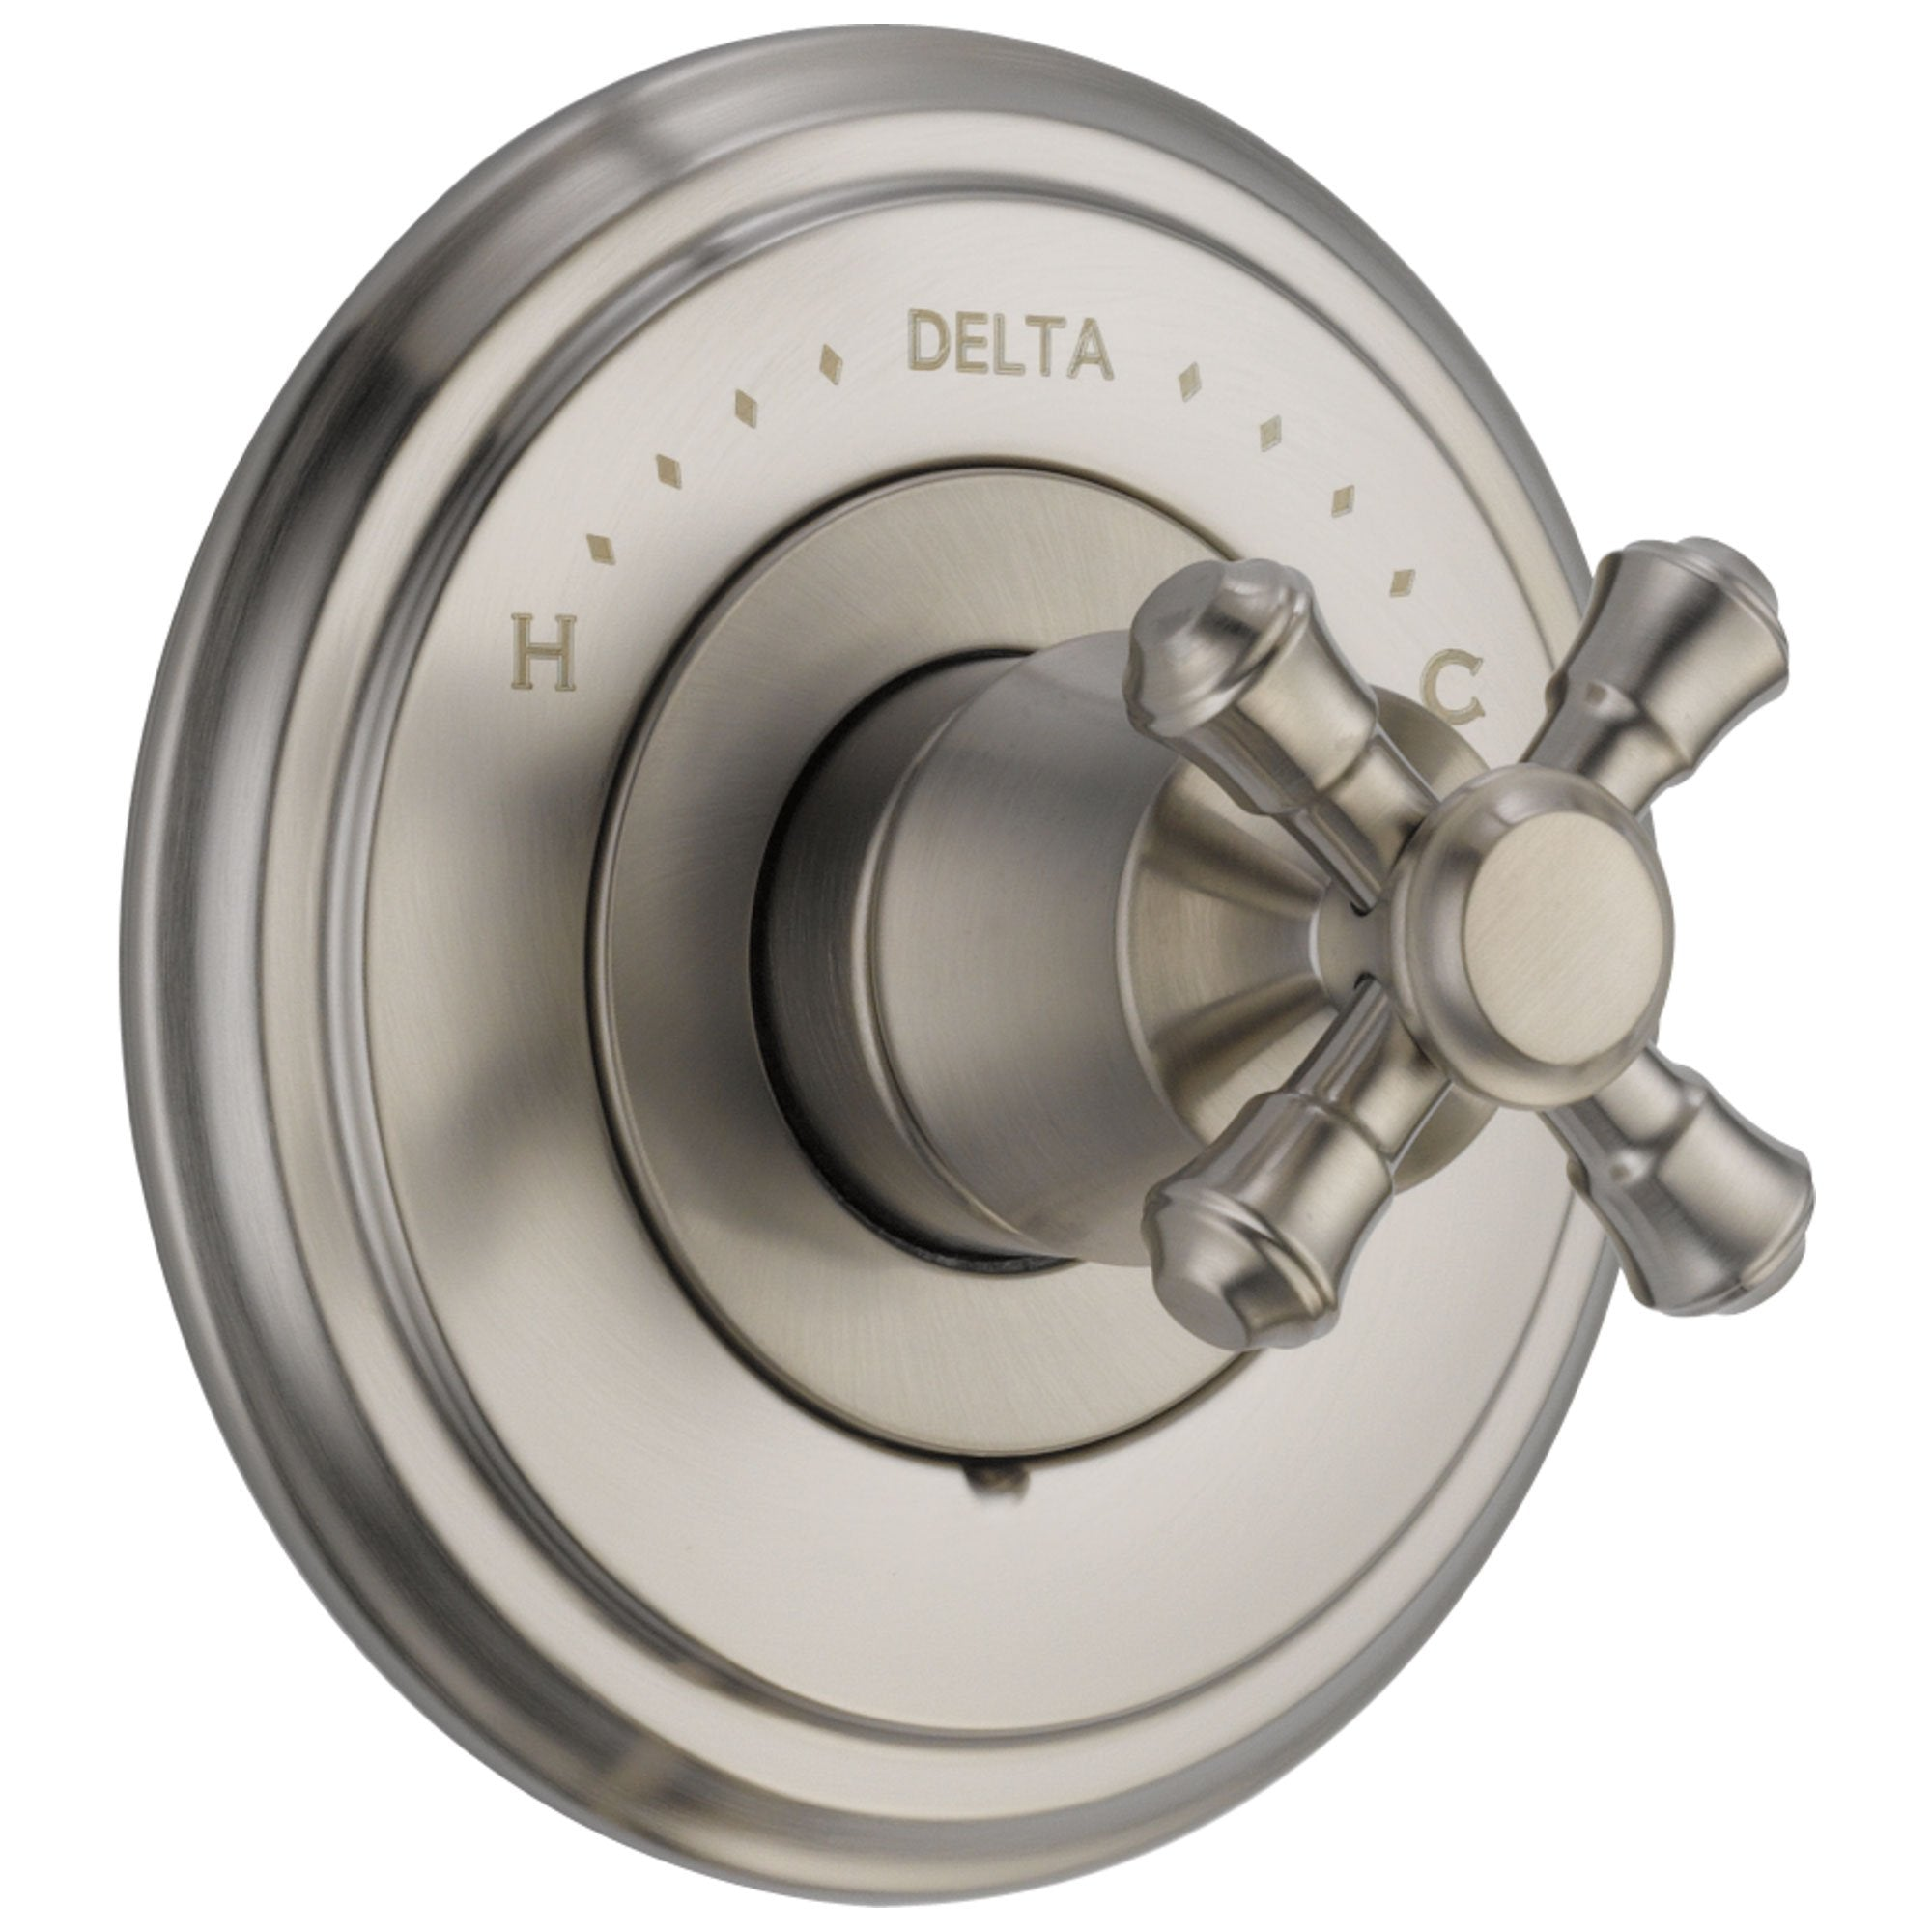 Delta Cassidy Collection Stainless Steel Finish Monitor 14 Shower Faucet Control COMPLETE ITEM with Single Cross Handle and Rough-in Valve with Stops D1589V